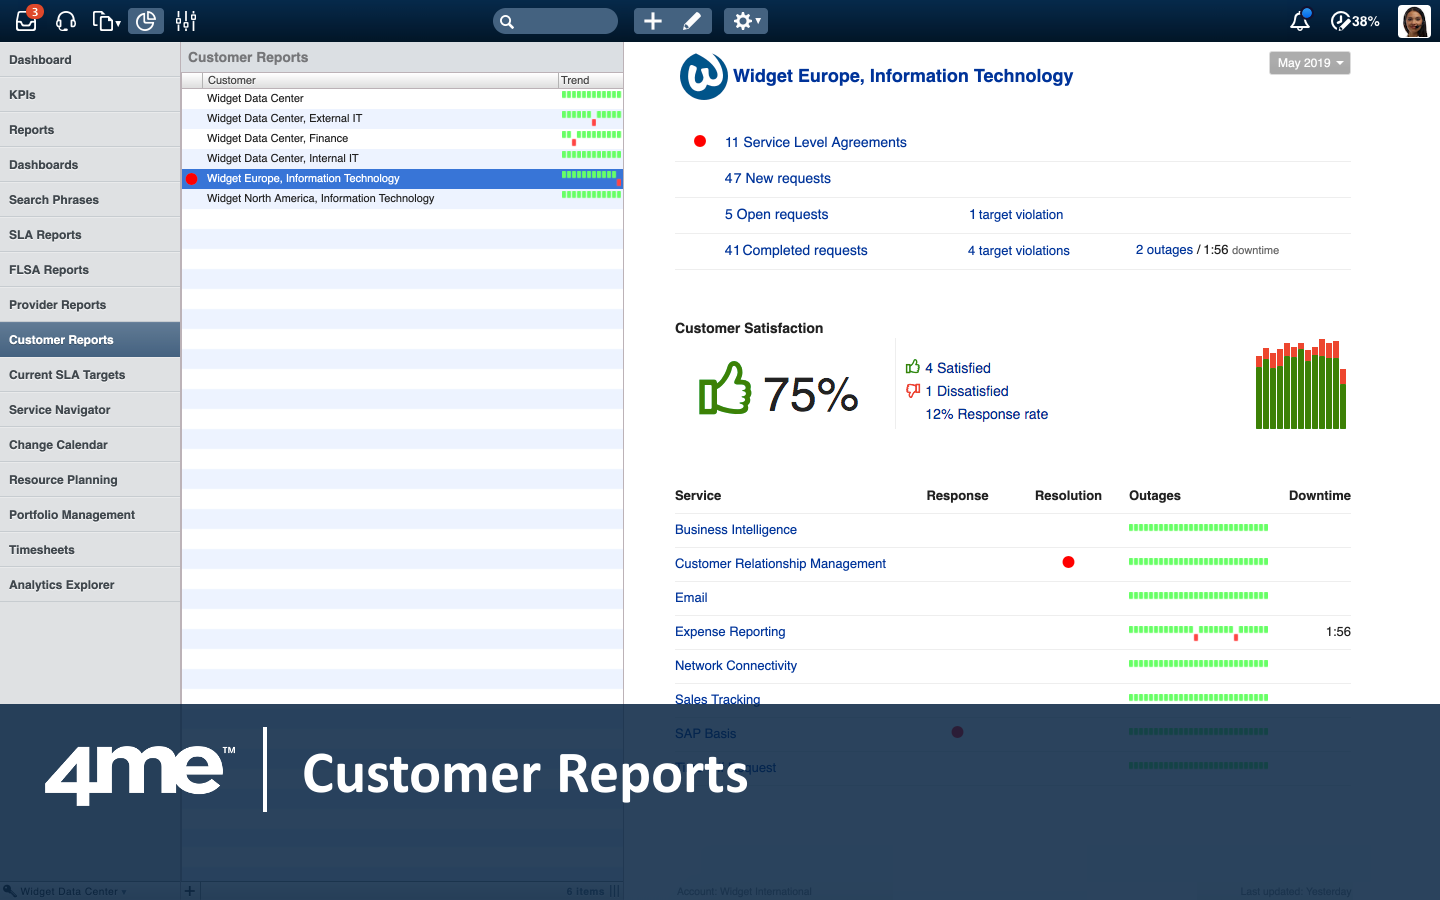 Providers can see how well they are performing for each of their customers in real time.